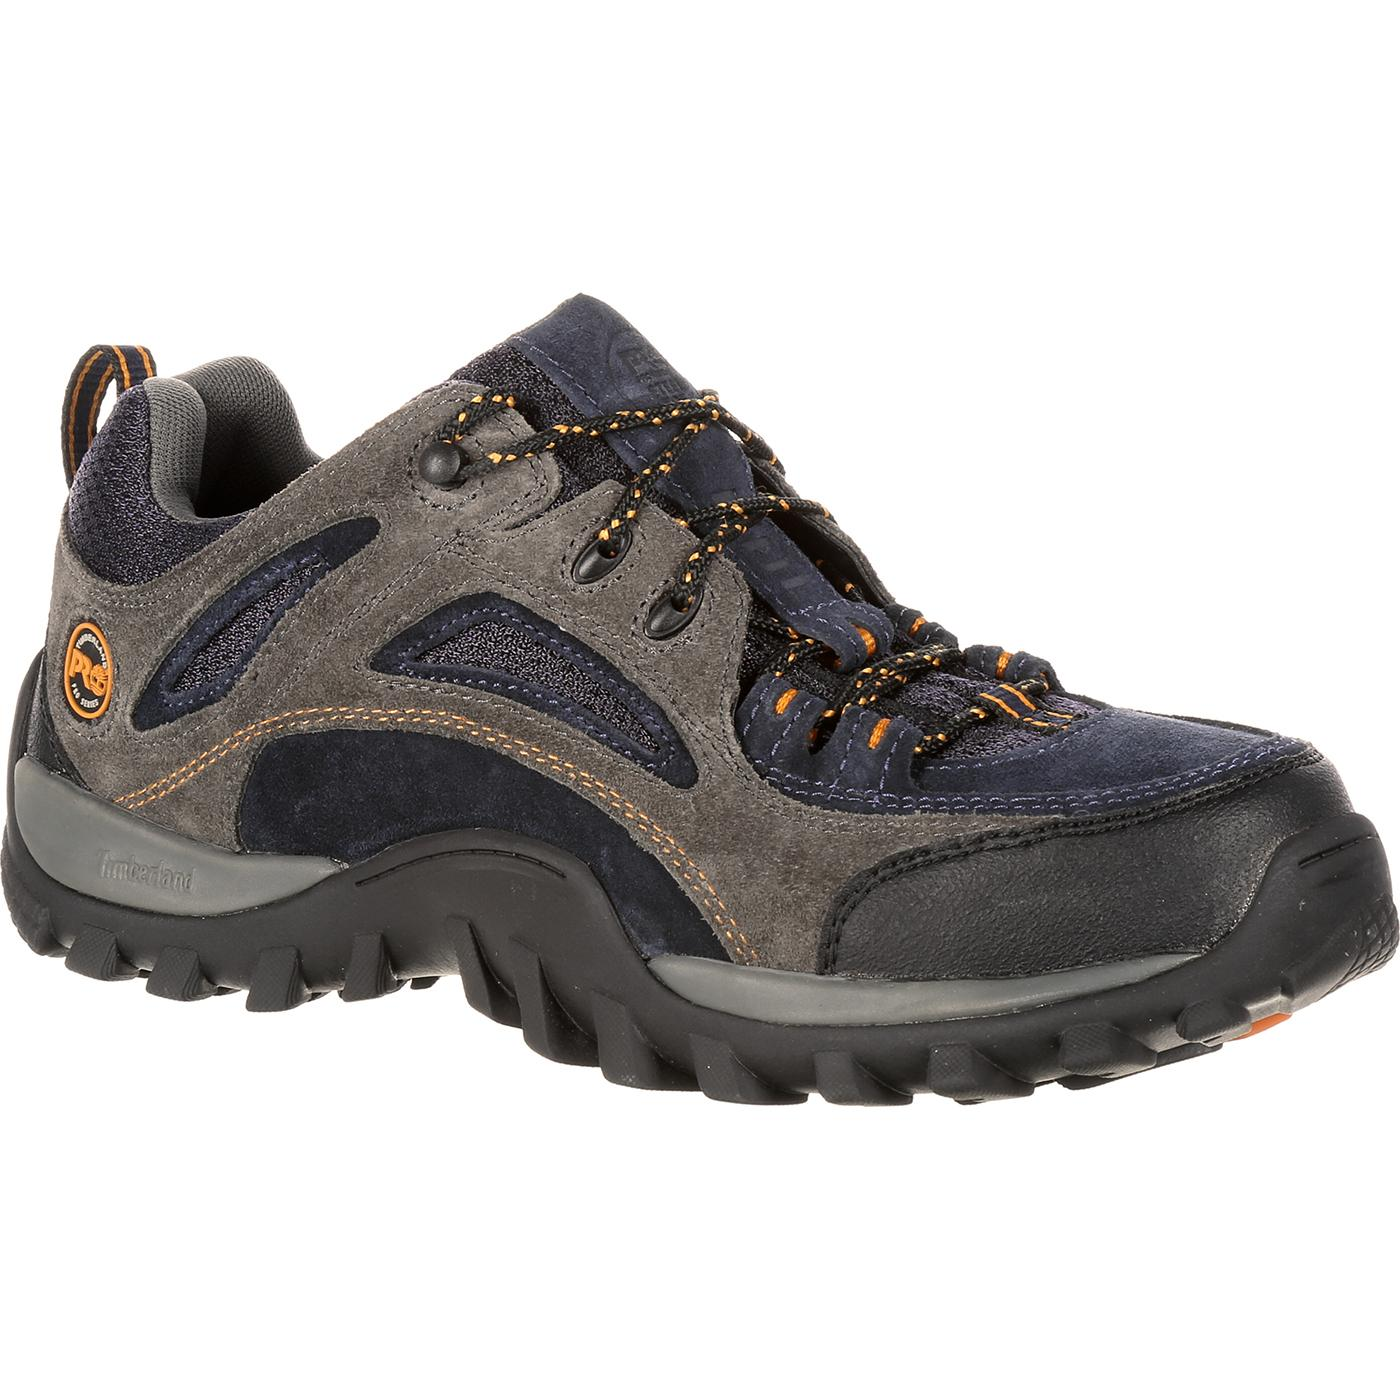 Timberland PRO Steel Toe LoCut Hiker Work Shoes #61009